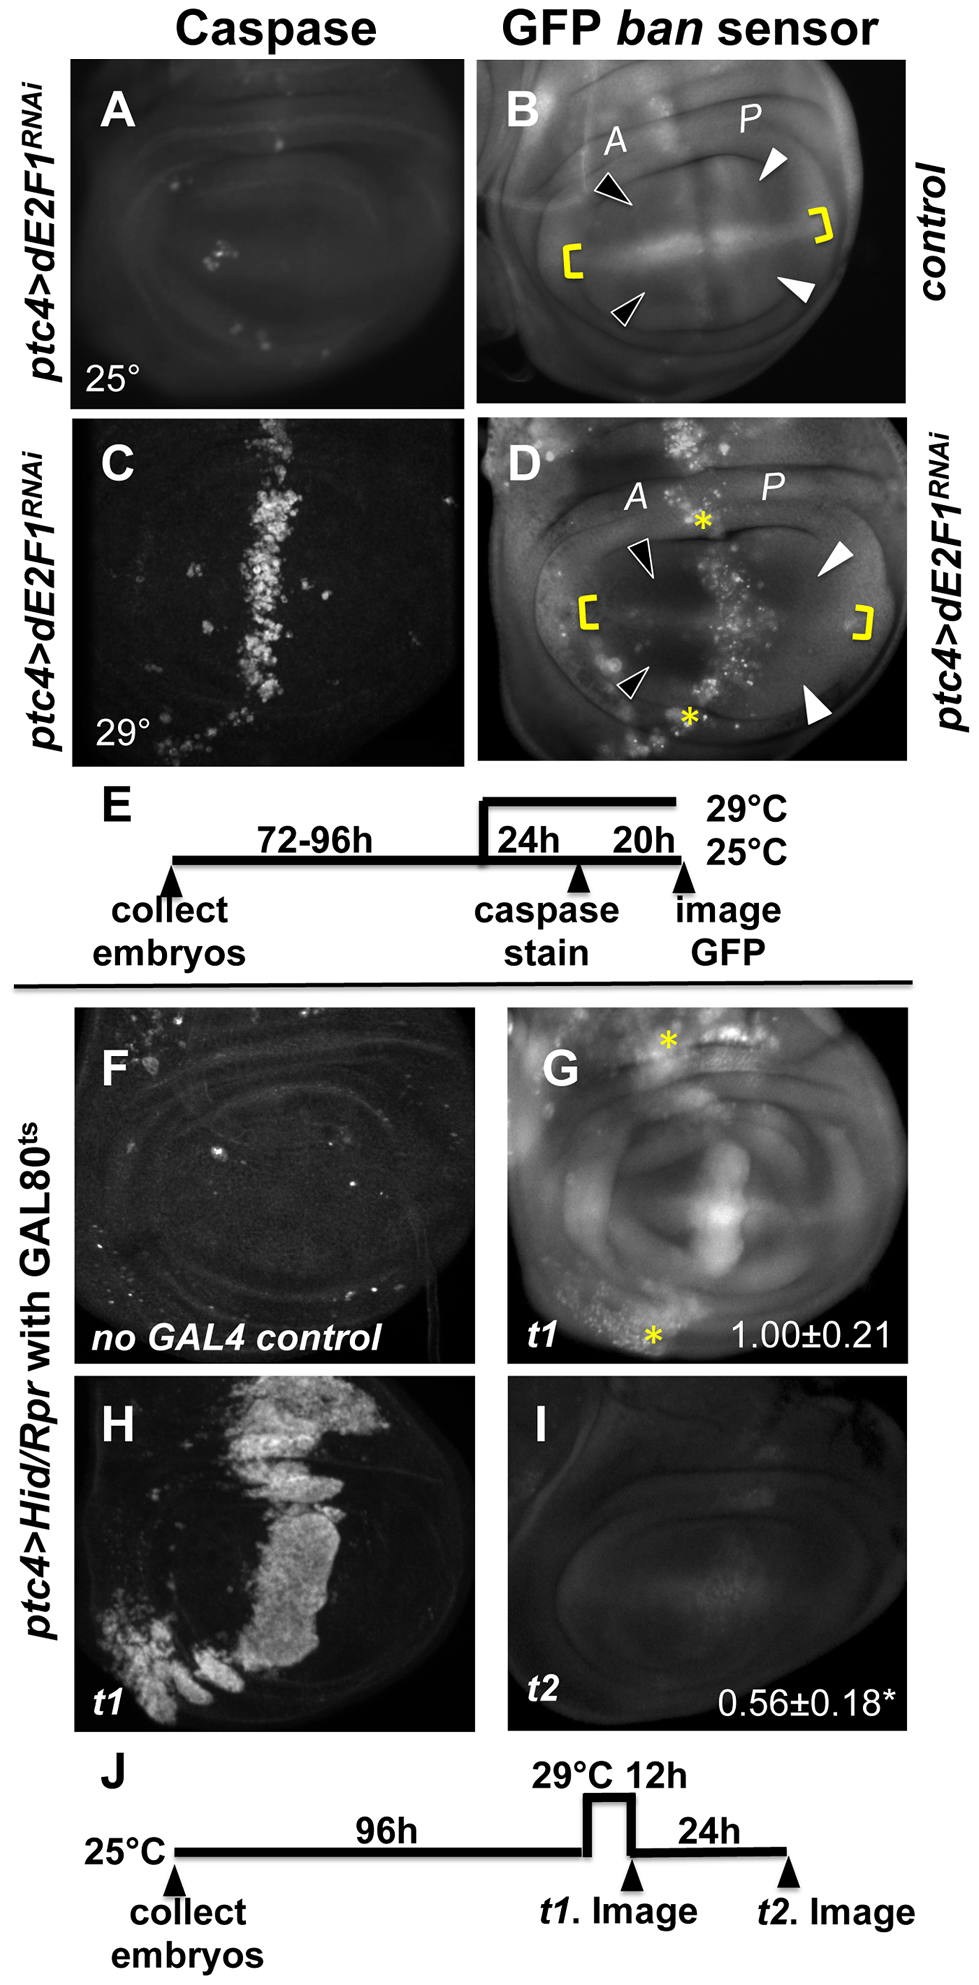 Changes in GFP <i>ban</i> sensor in discs with <i>ptc-GAL4</i>-driven cell death.